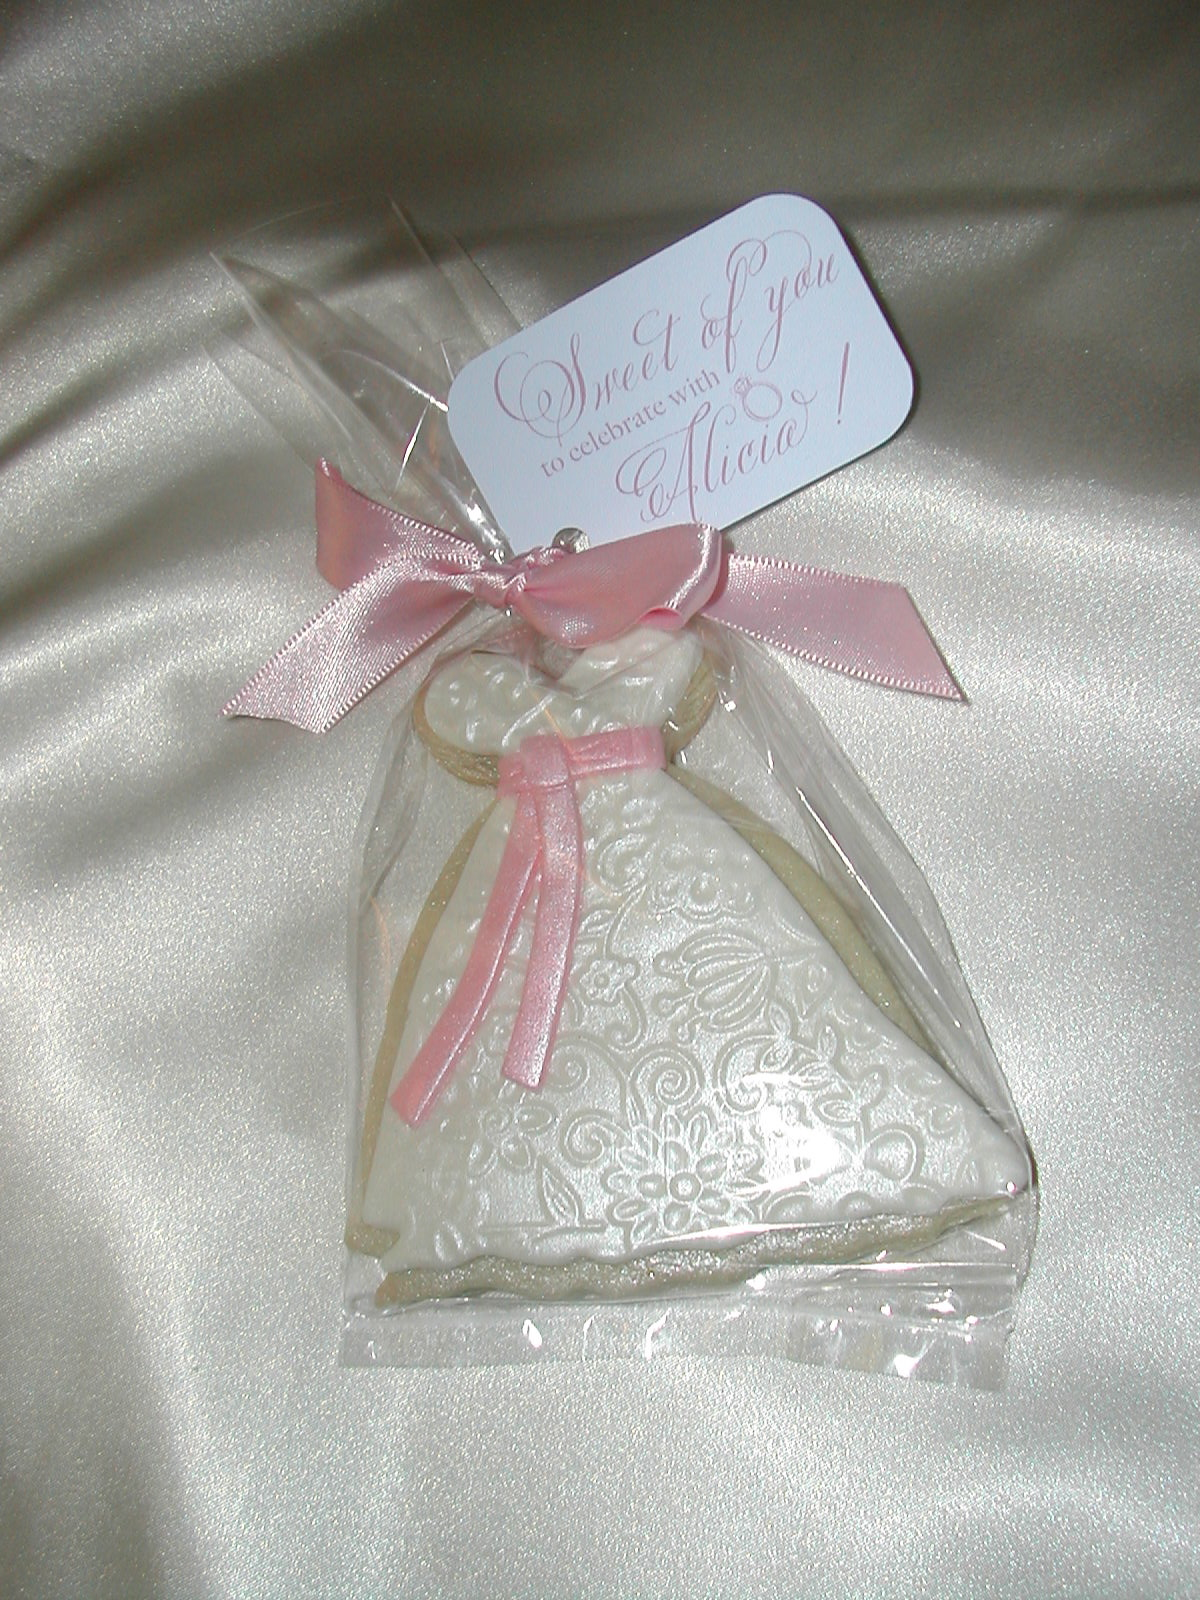 Cookie, Bridal Dress Cookie, Wedding Favor, Bridal Shower Favor